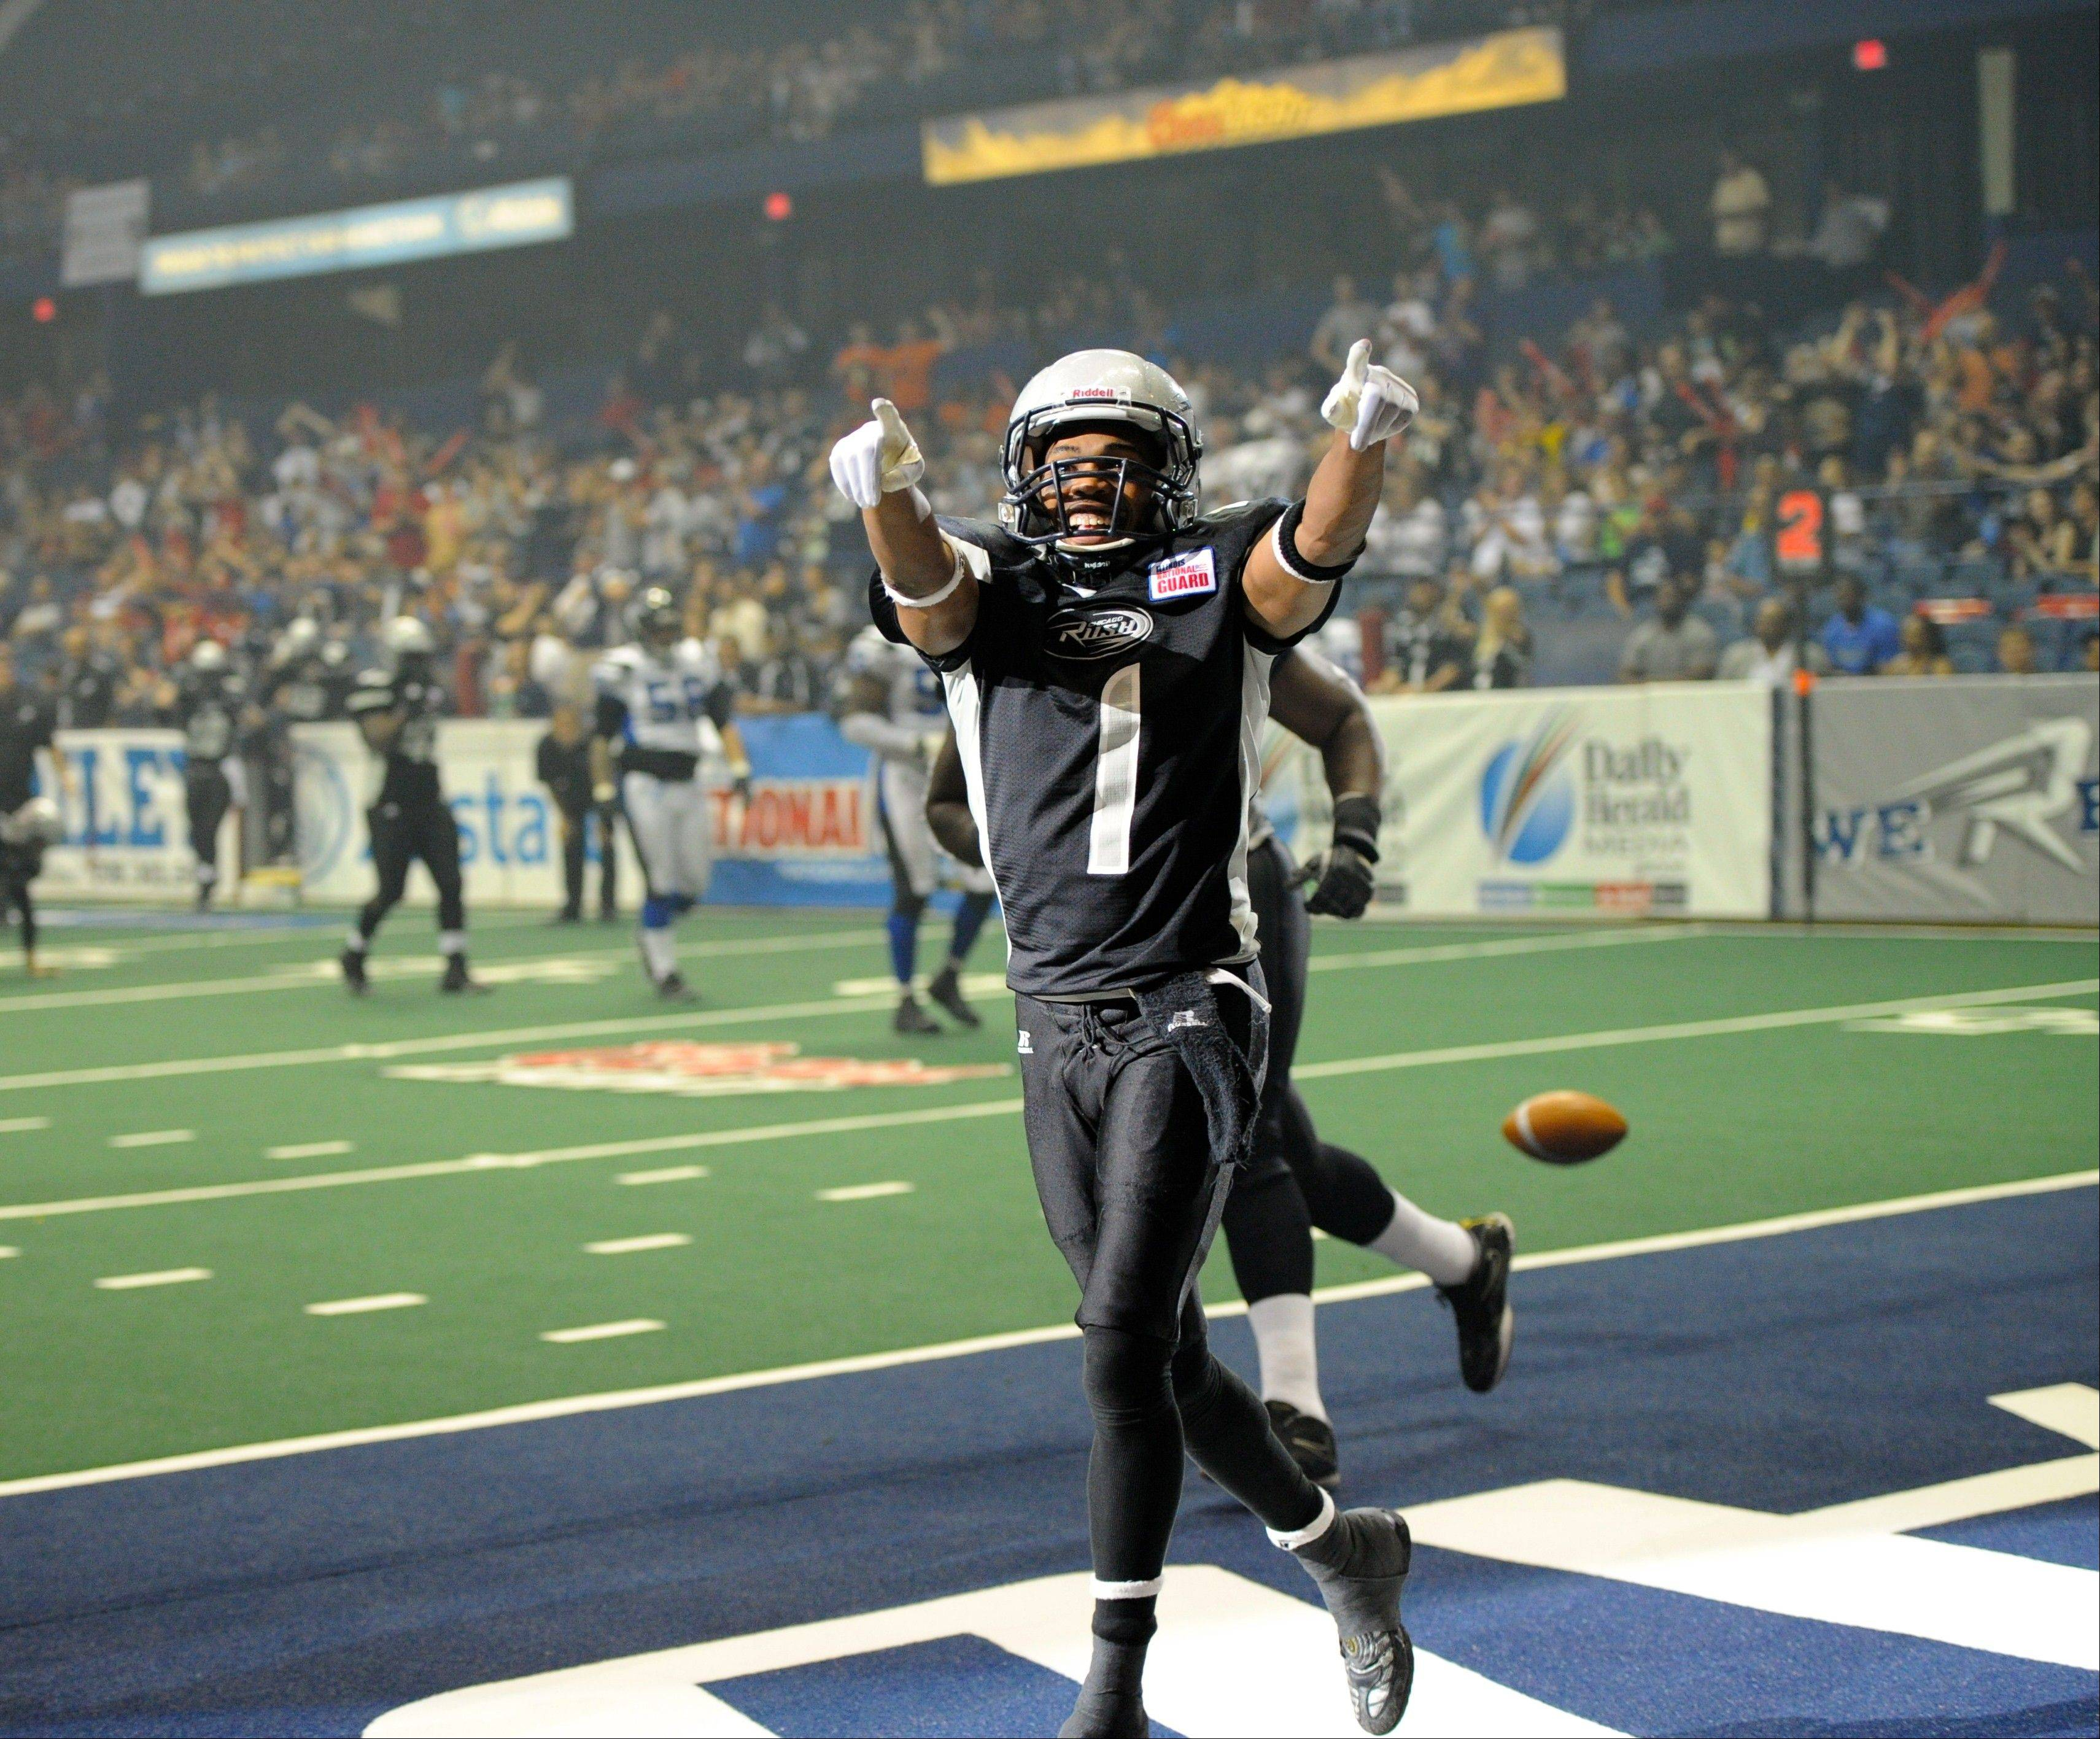 Rush wide receiver Reggie Gray celebrates a touchdown. Gray has found the end zone 33 times this season.